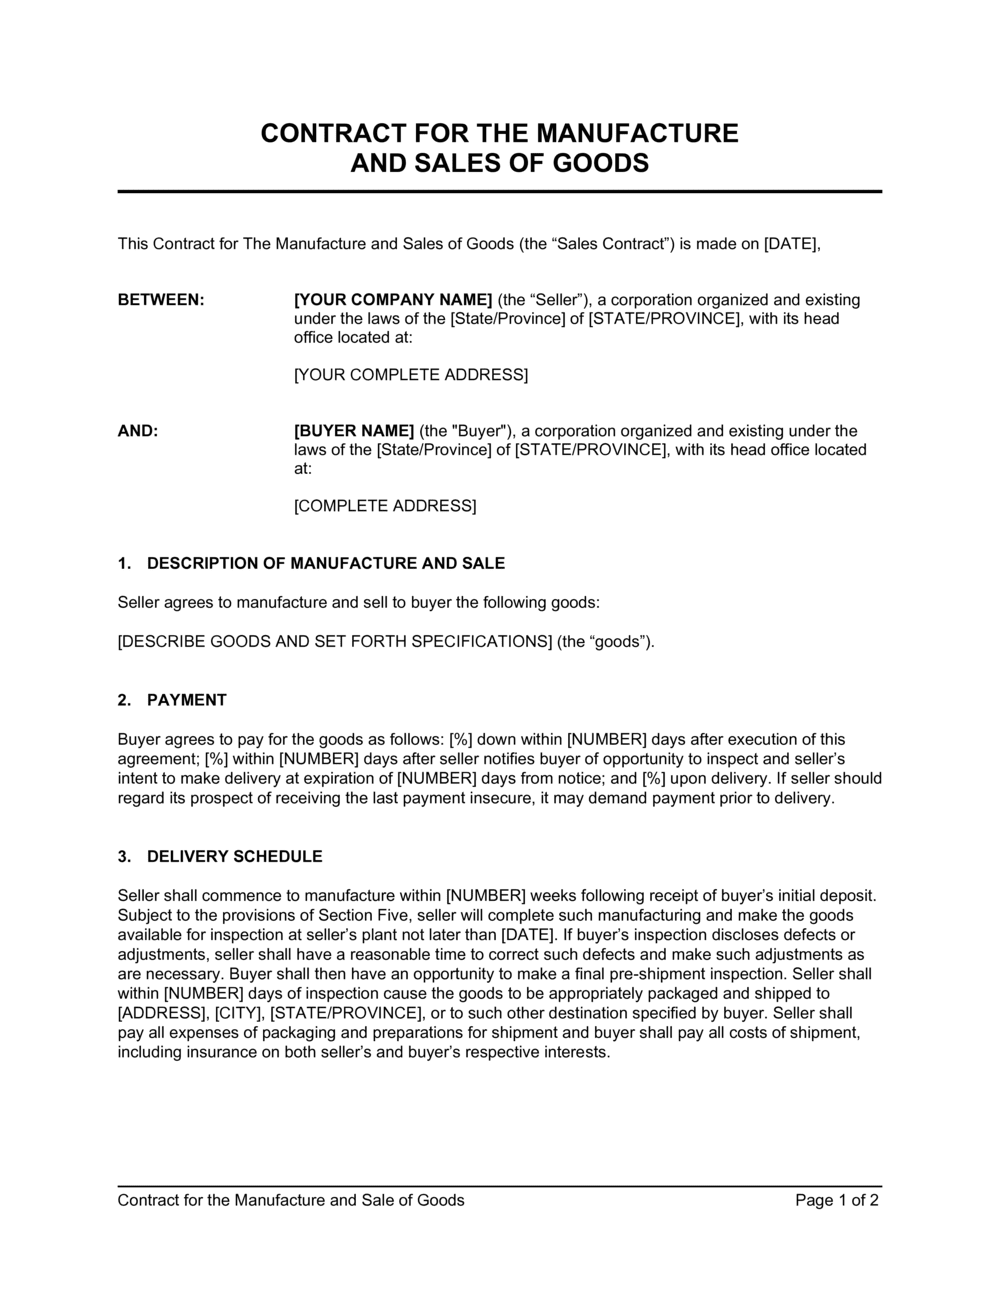 Business-in-a-Box's Contract for the Manufacture and Sale of Goods Template